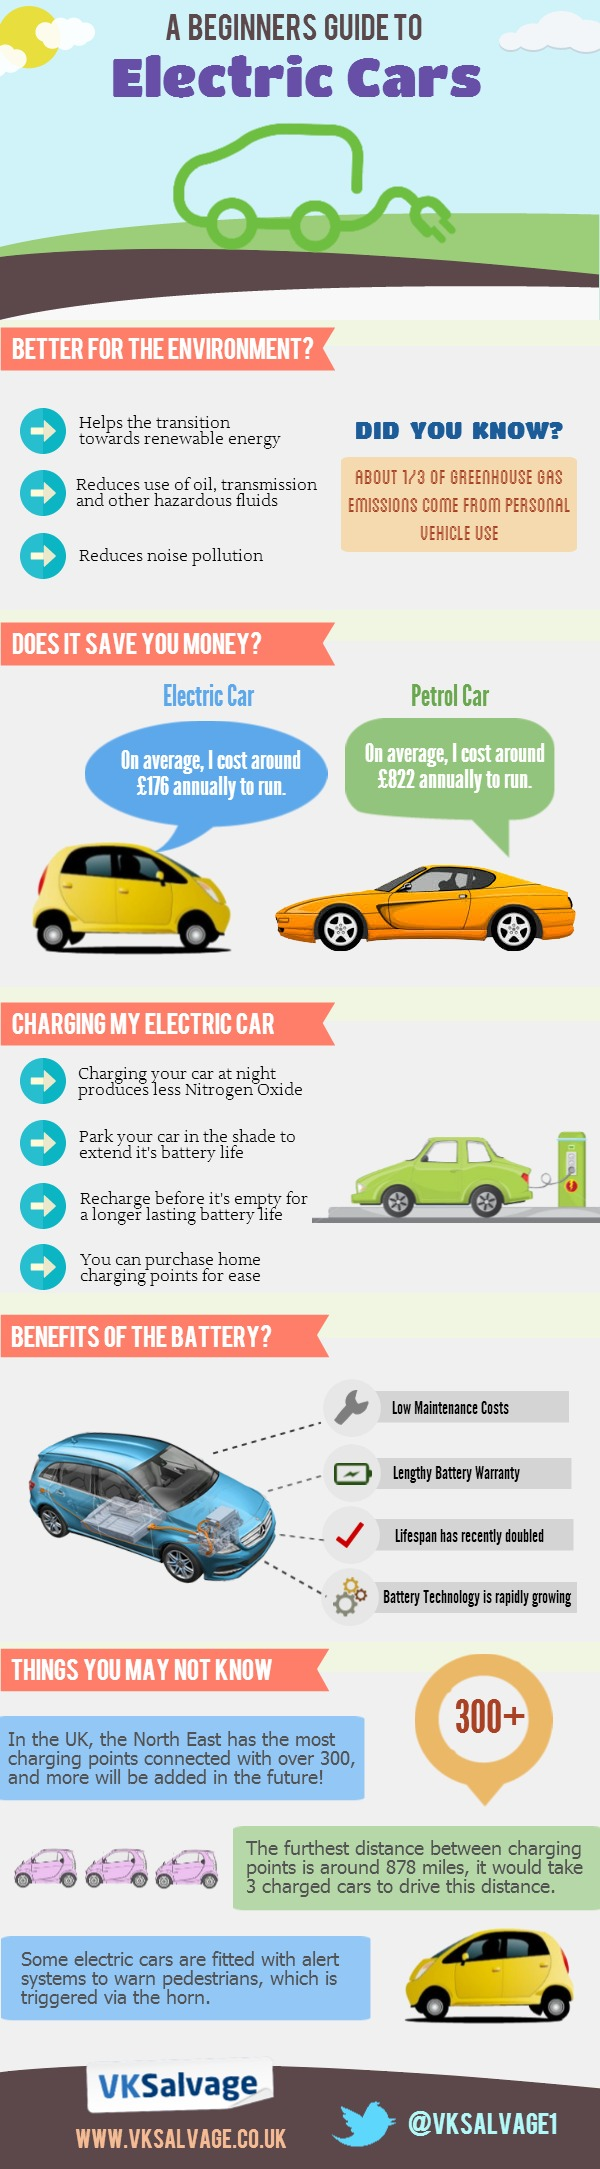 A-Beginners-Guide-to-Electric-Cars